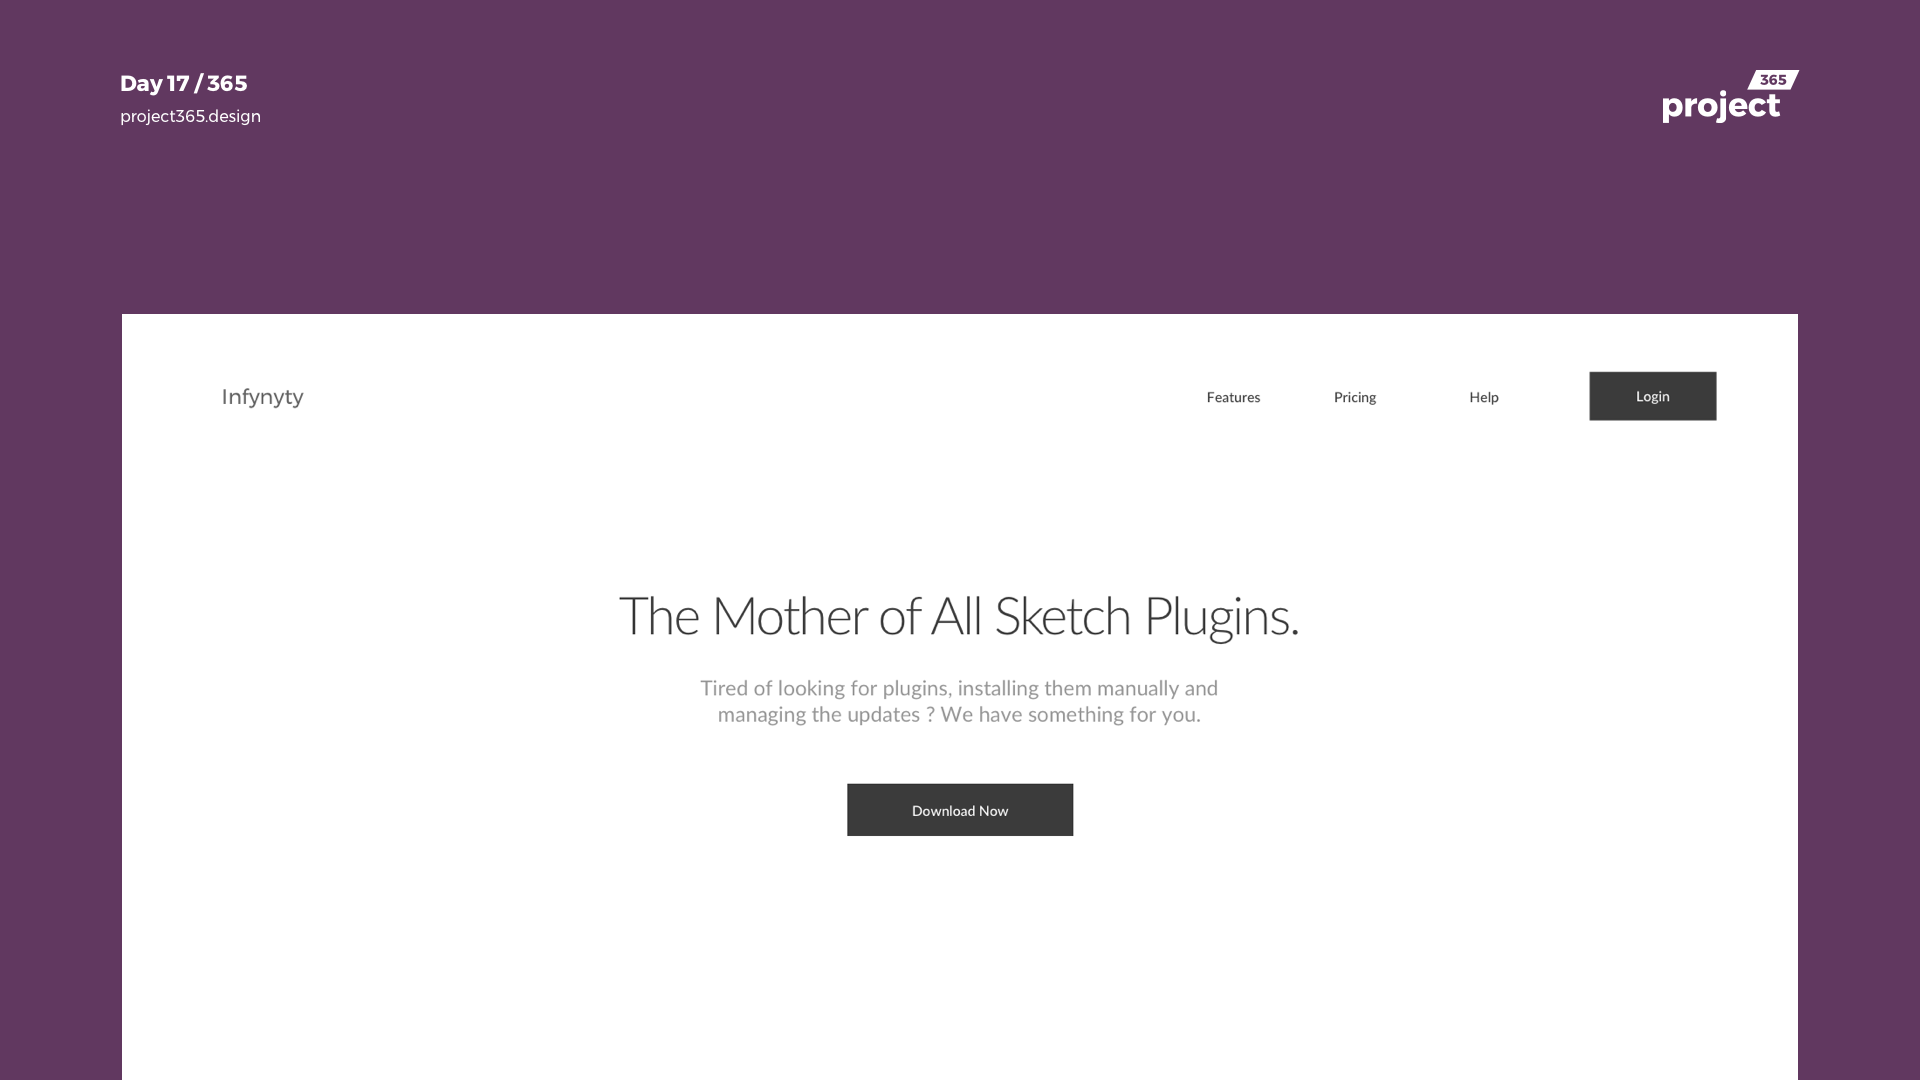 Day 17 – Infynyty – Sketch Plugin Idea